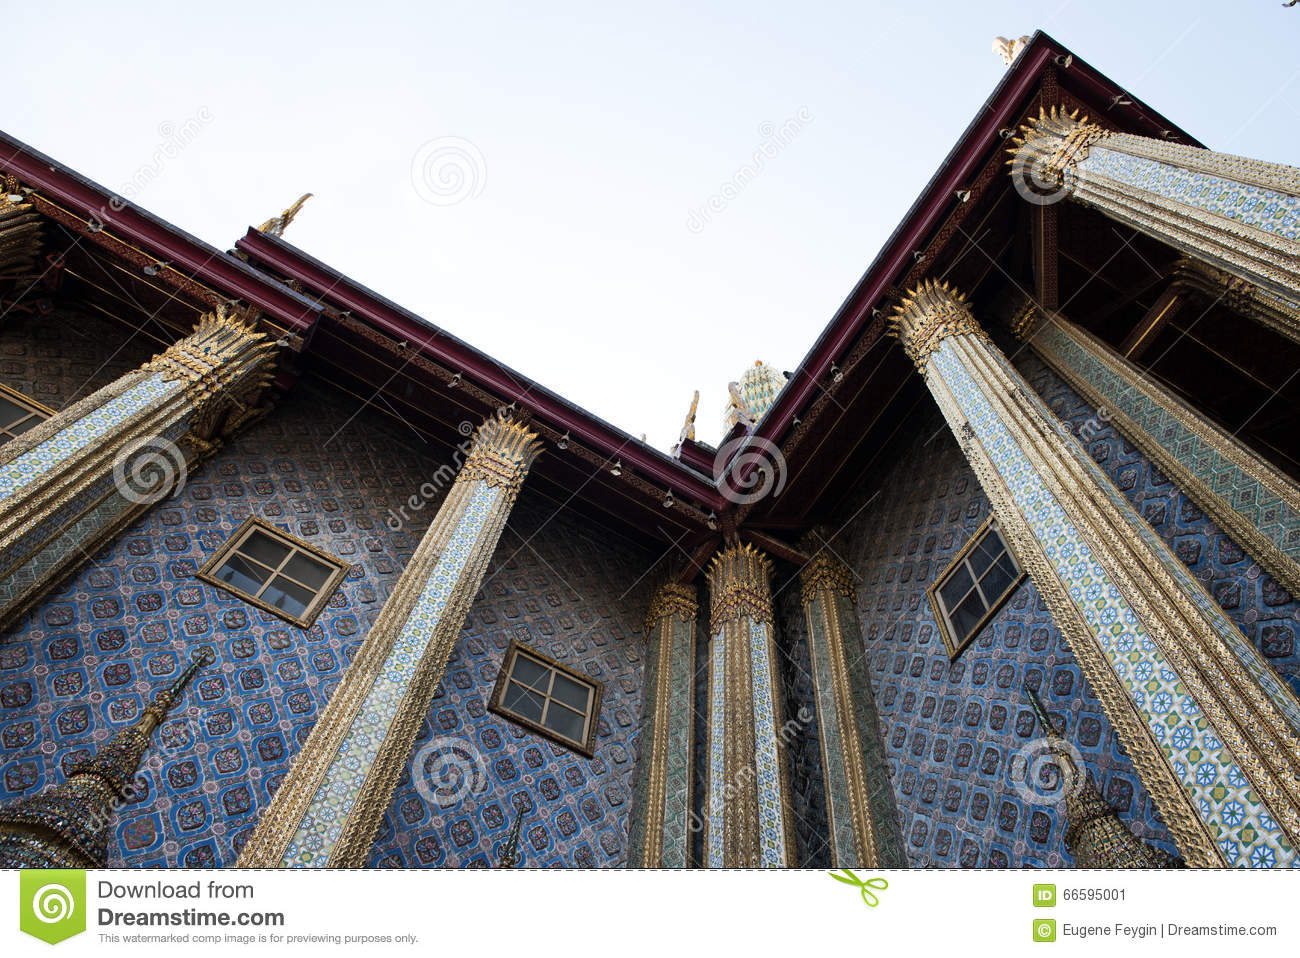 Royal Architecture Of Siamese Palace Stock Image - Image of golden ...